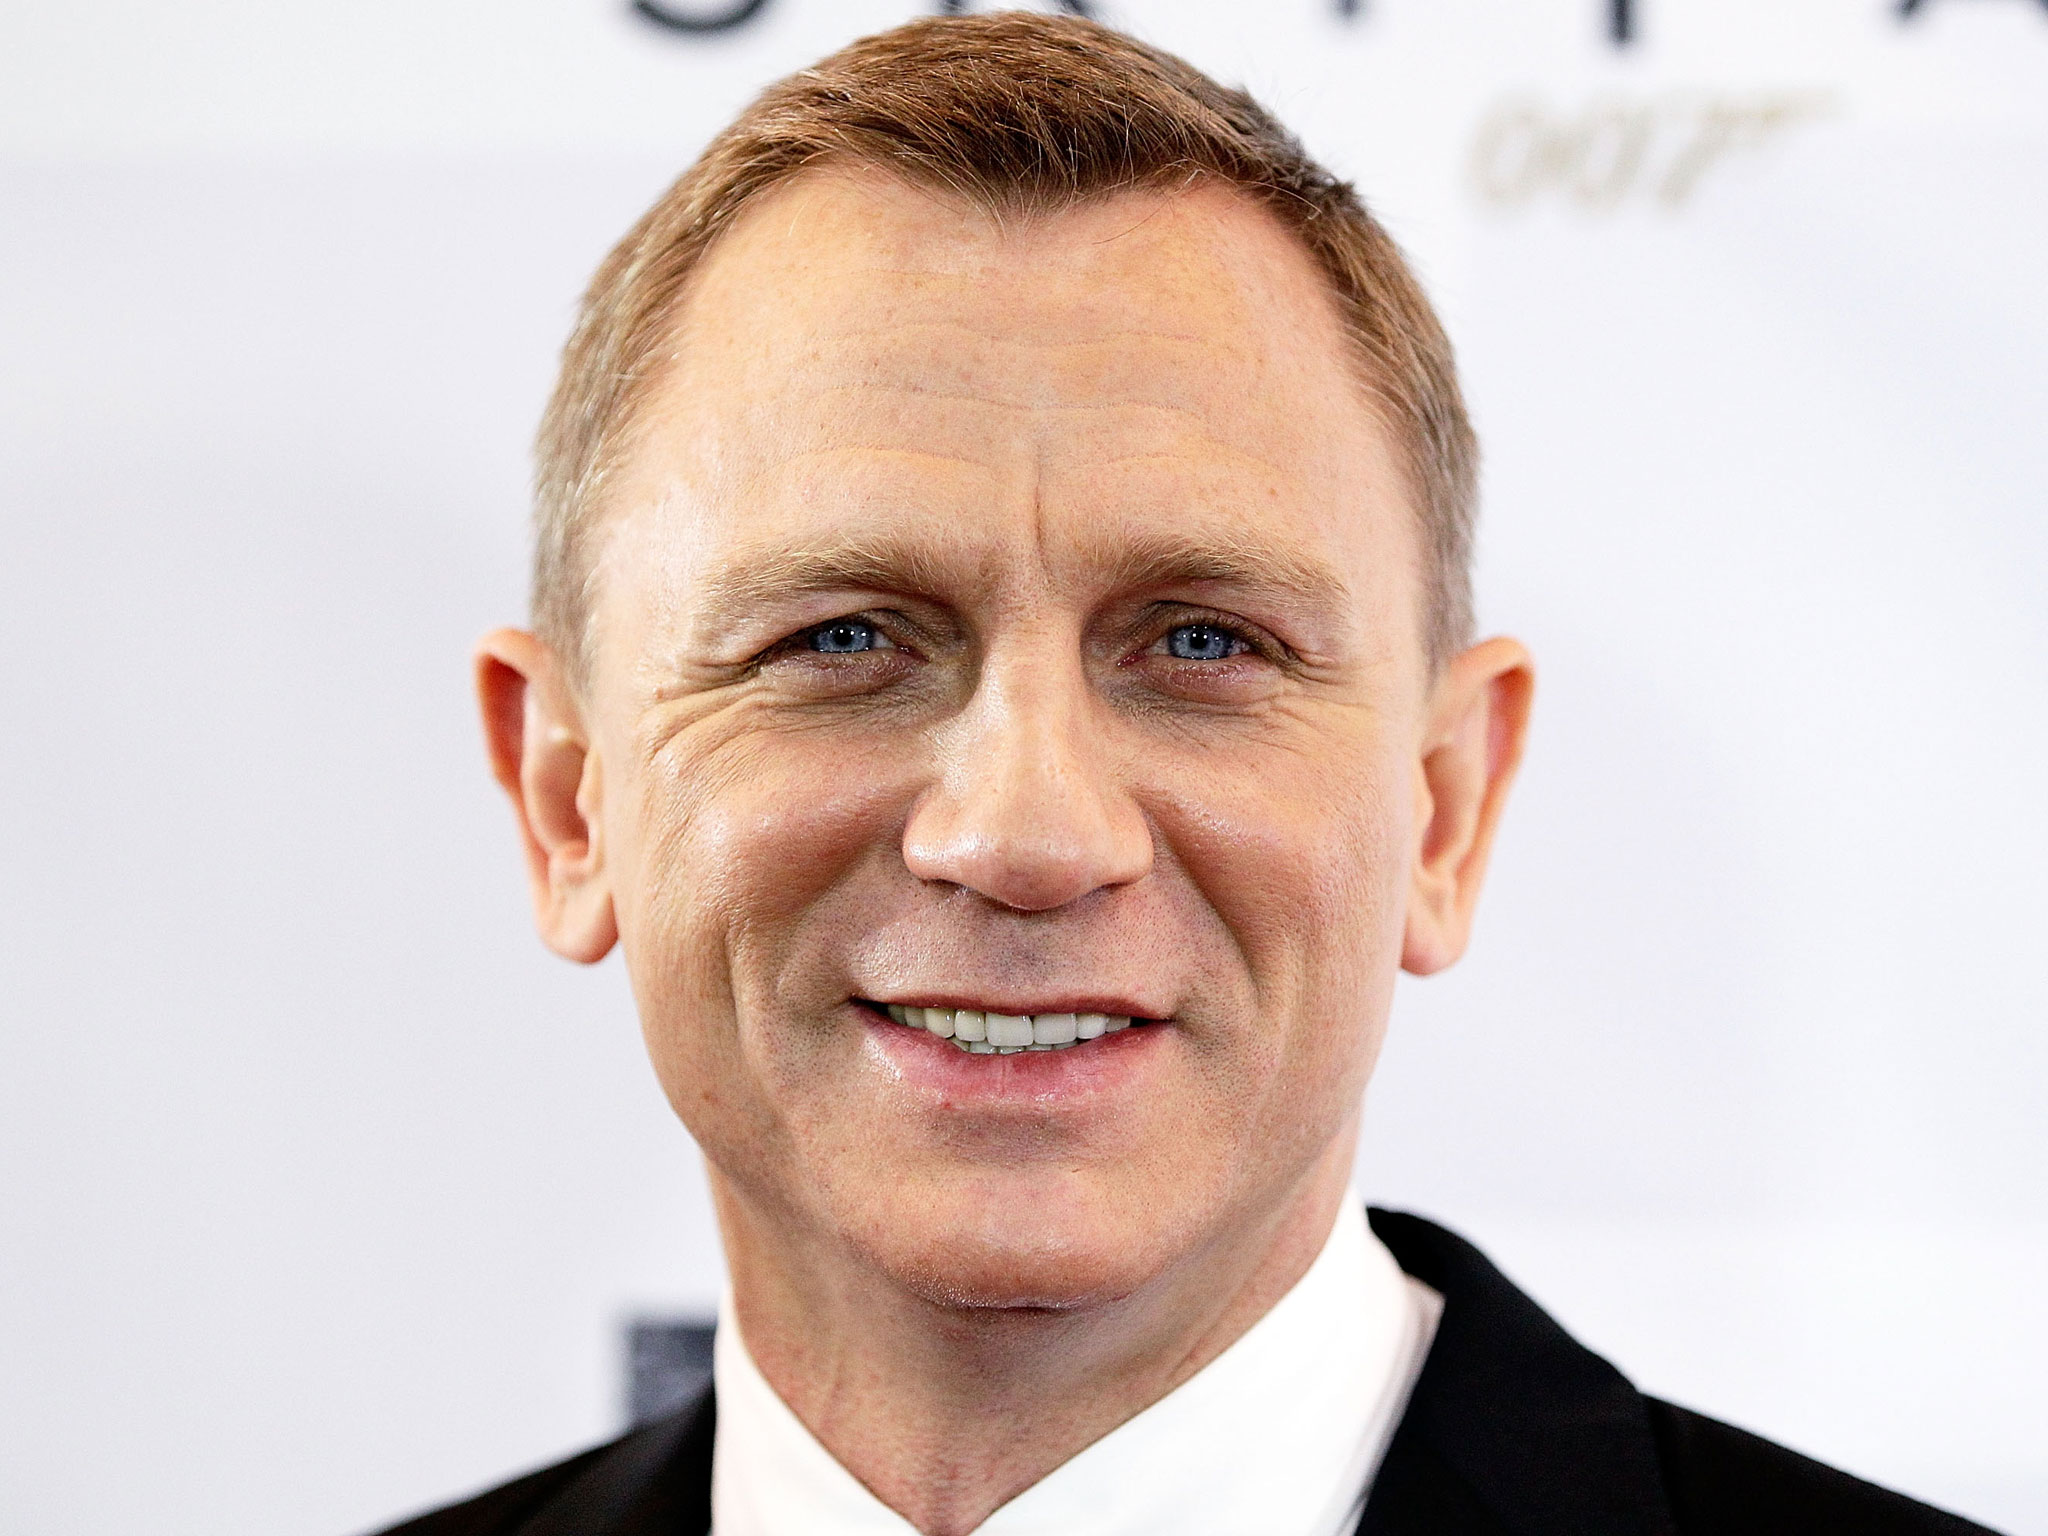 Daniel Craig forced to undergo surgery after being injured on